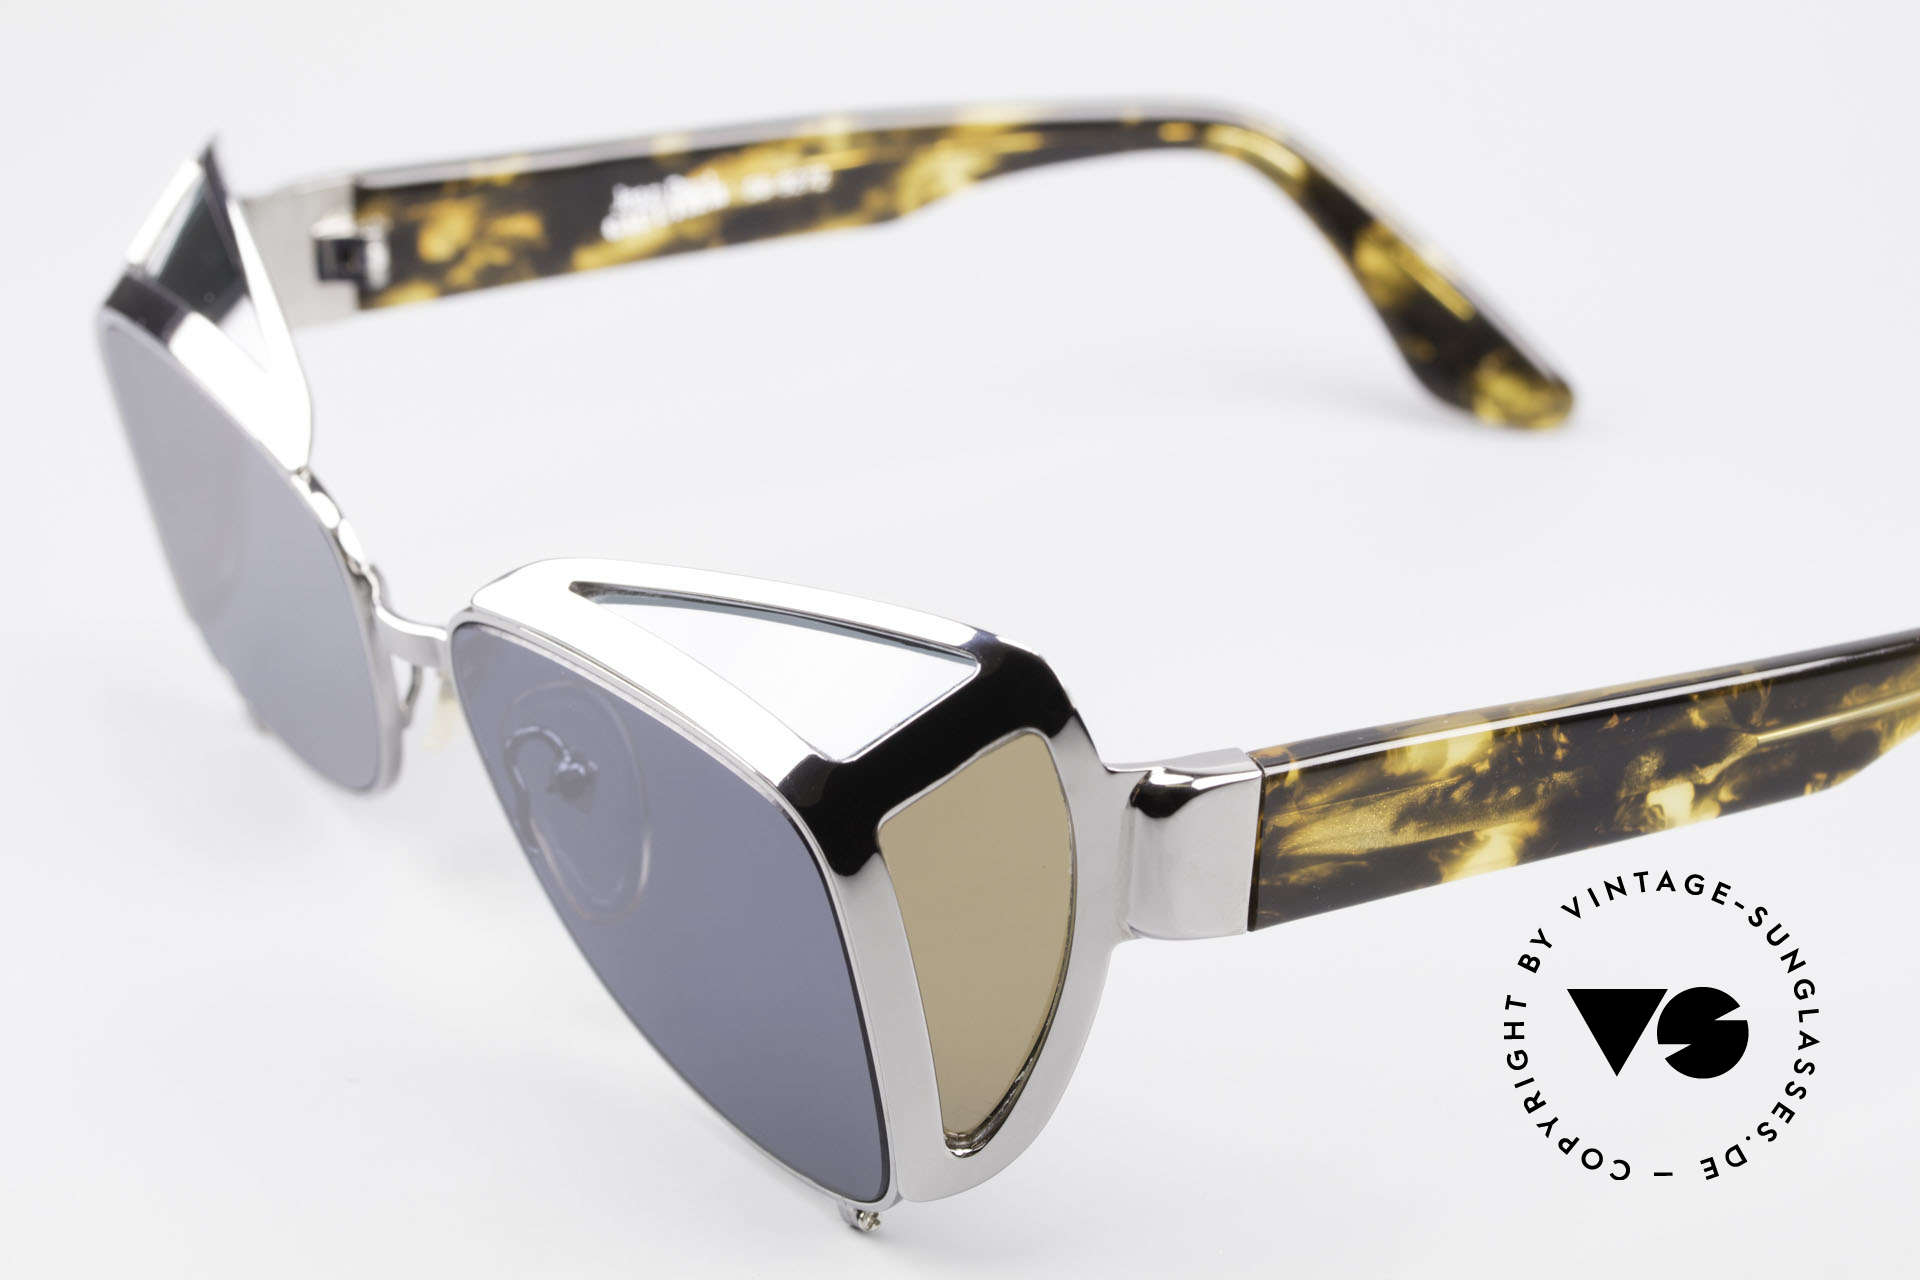 Jean Paul Gaultier 56-9272 Rare Steampunk Sunglasses, unused (like all our Haute Couture sunglasses), Made for Men